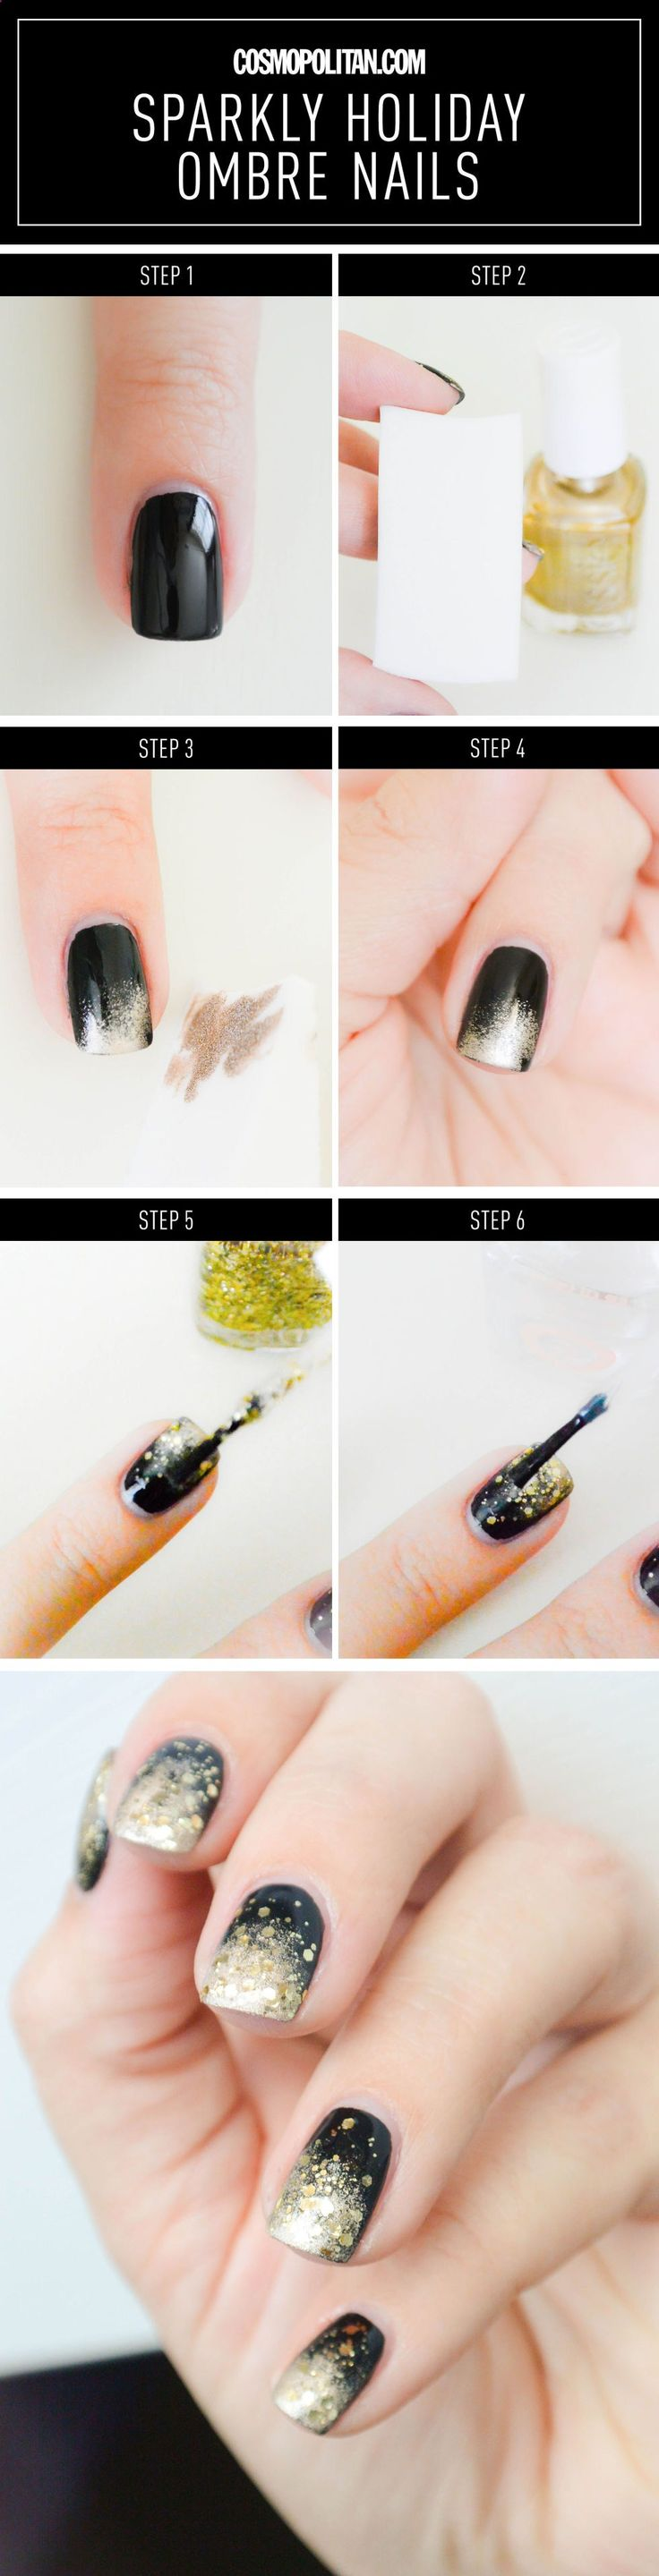 Sparkly New Years Eve Ombré Nails - Nail Tutorial 1. Basecoat, such as Essie Millionails 2. Black nail polish, such as Essie Licorice 3. Gold nail polish, such as Essie Good as Gold 4. Glitter polish, such as Essies Rock at the Top 5. Makeup sponge 6. Topcoat, such as Essie Good to G